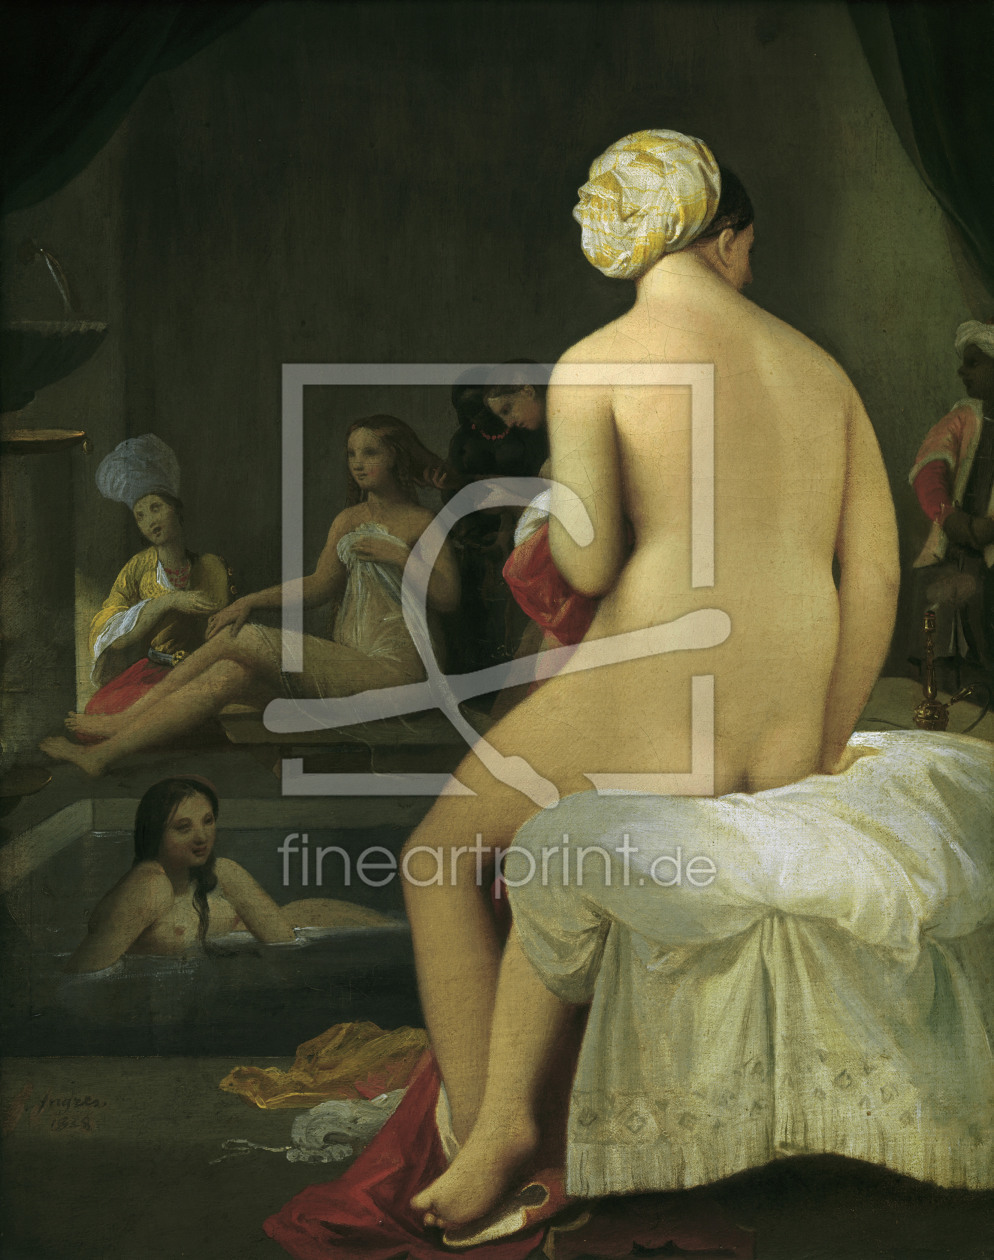 Bild-Nr.: 30001188 Ingres / Little Bather in Harem / 1828 erstellt von Ingres, Jean-Auguste-Dominique